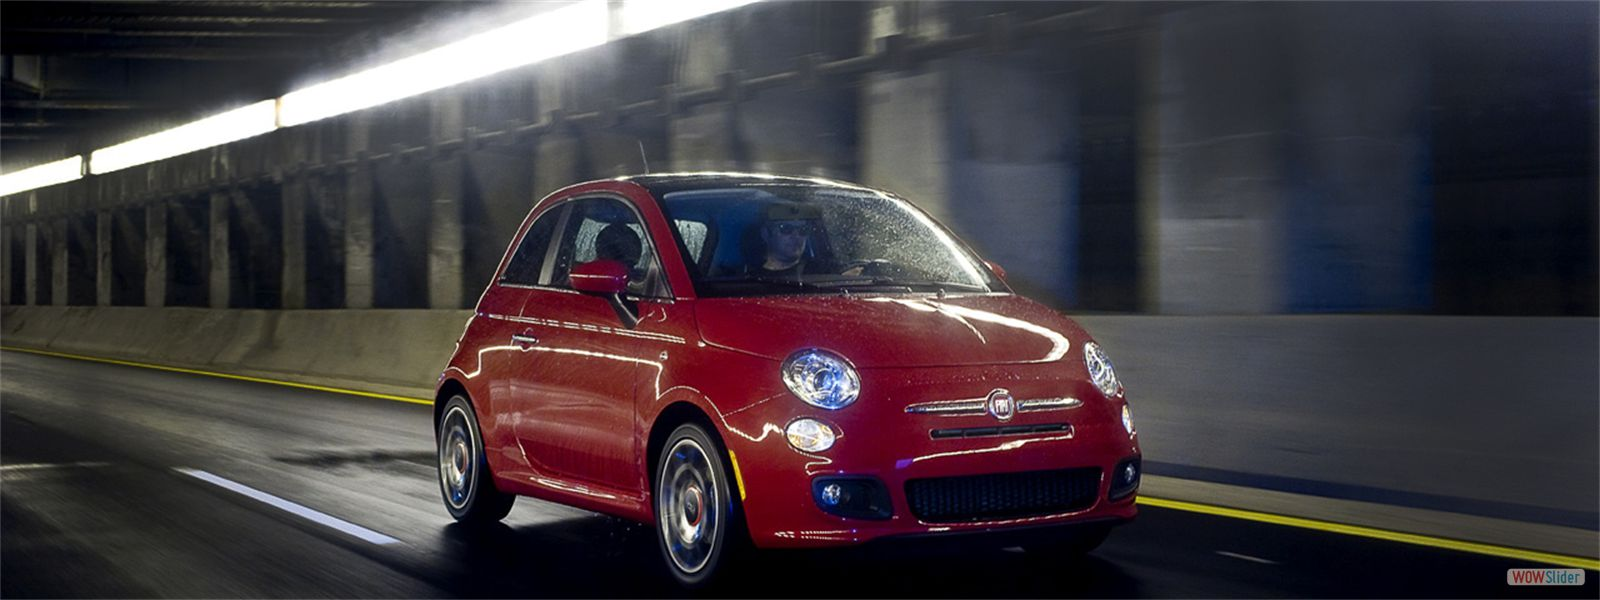 2012-Fiat-500-Red-Front-Angle-Speed-1280x960